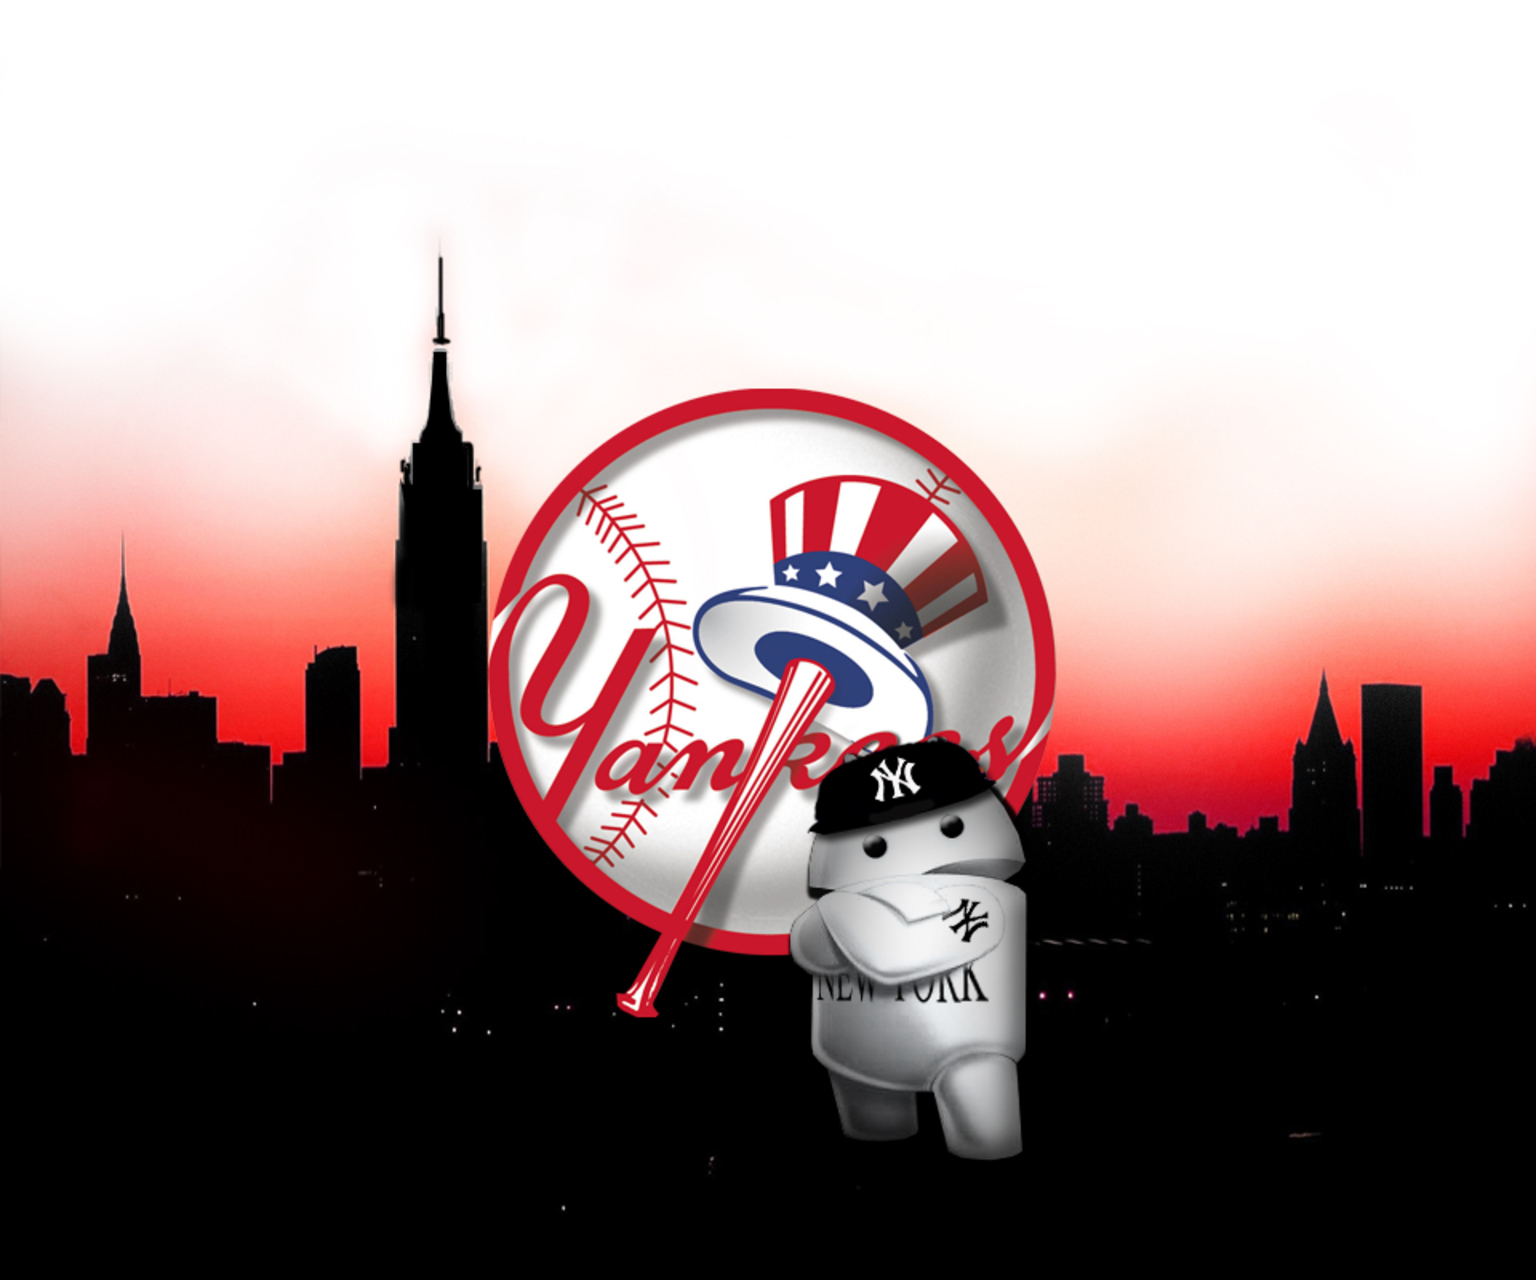 Wallpaper Iphone New York: NY Yankees IPhone Wallpaper